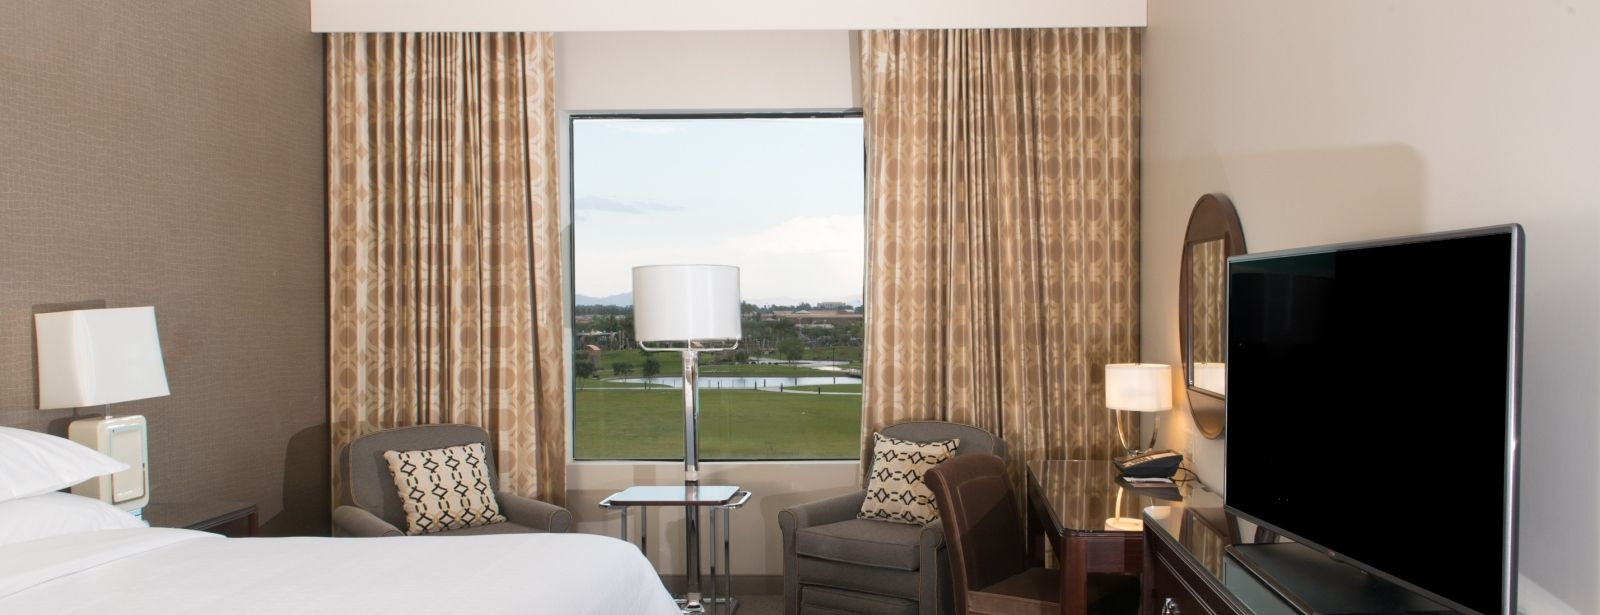 Traditional Guestroom | Sheraton Mesa Hotel at Wrigleyville West